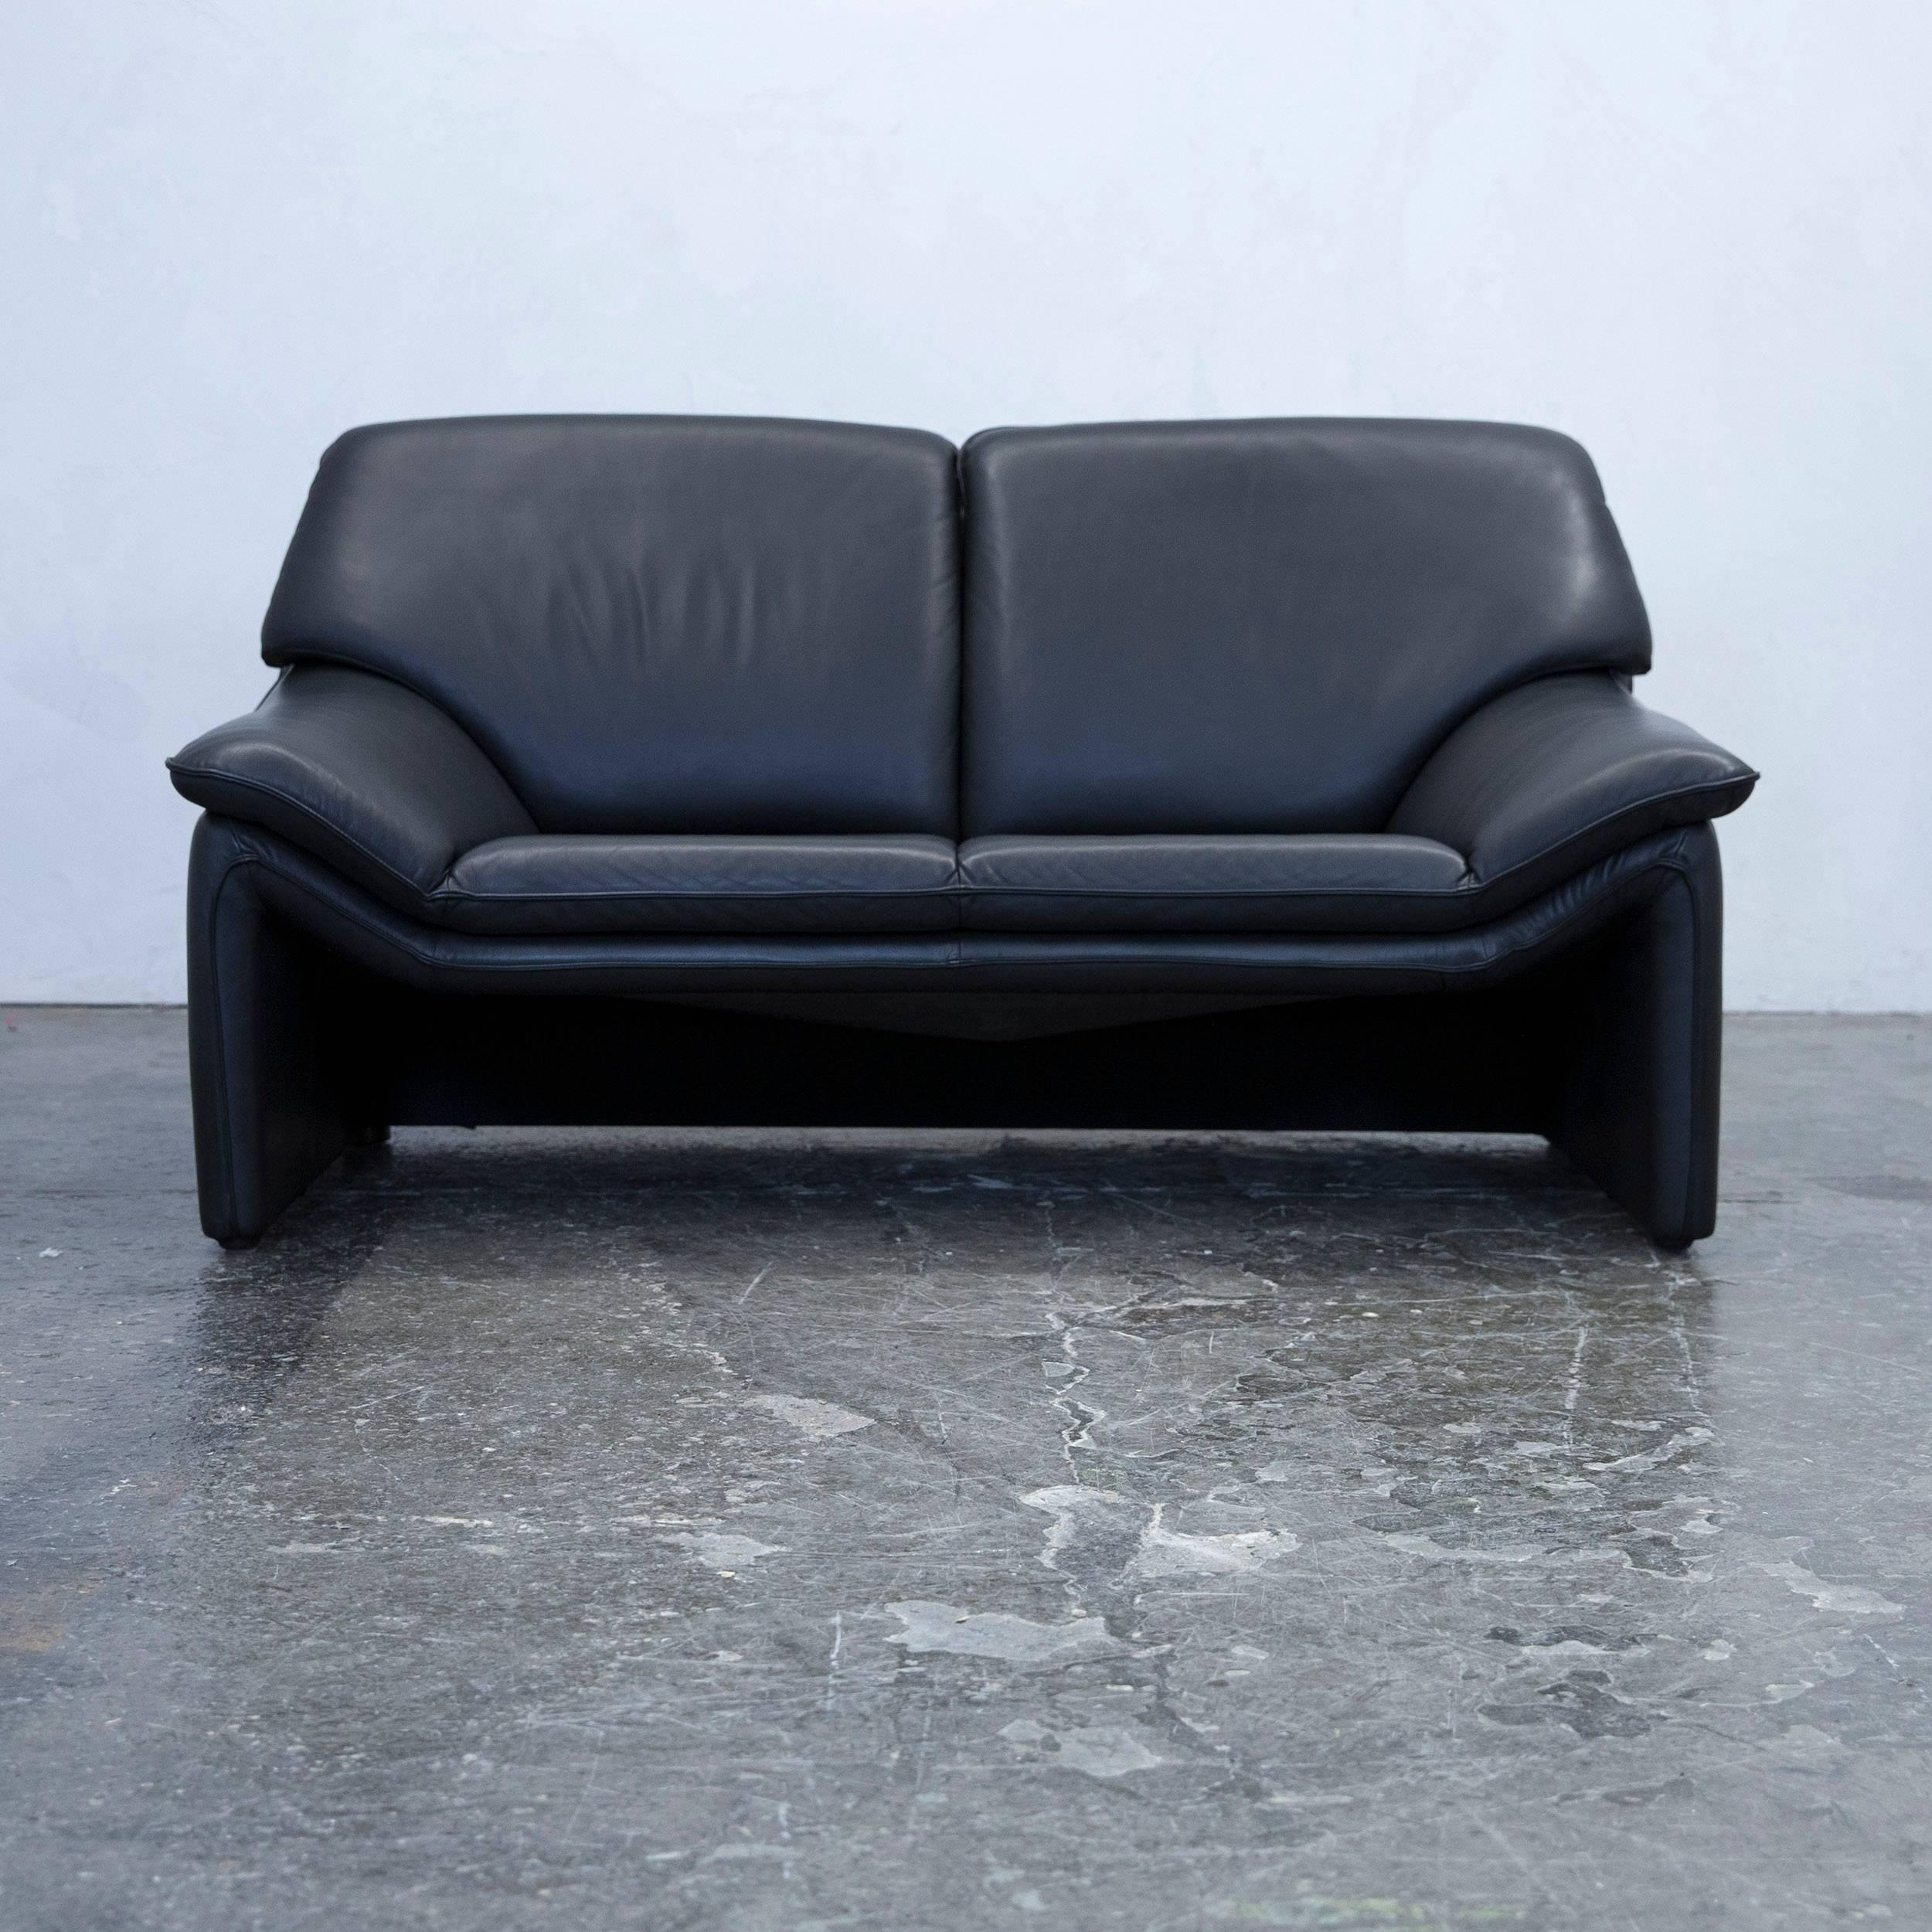 Laauser Atlanta Designer Sofa Set Leather Black Three Seat Couch Modern At  1stdibs